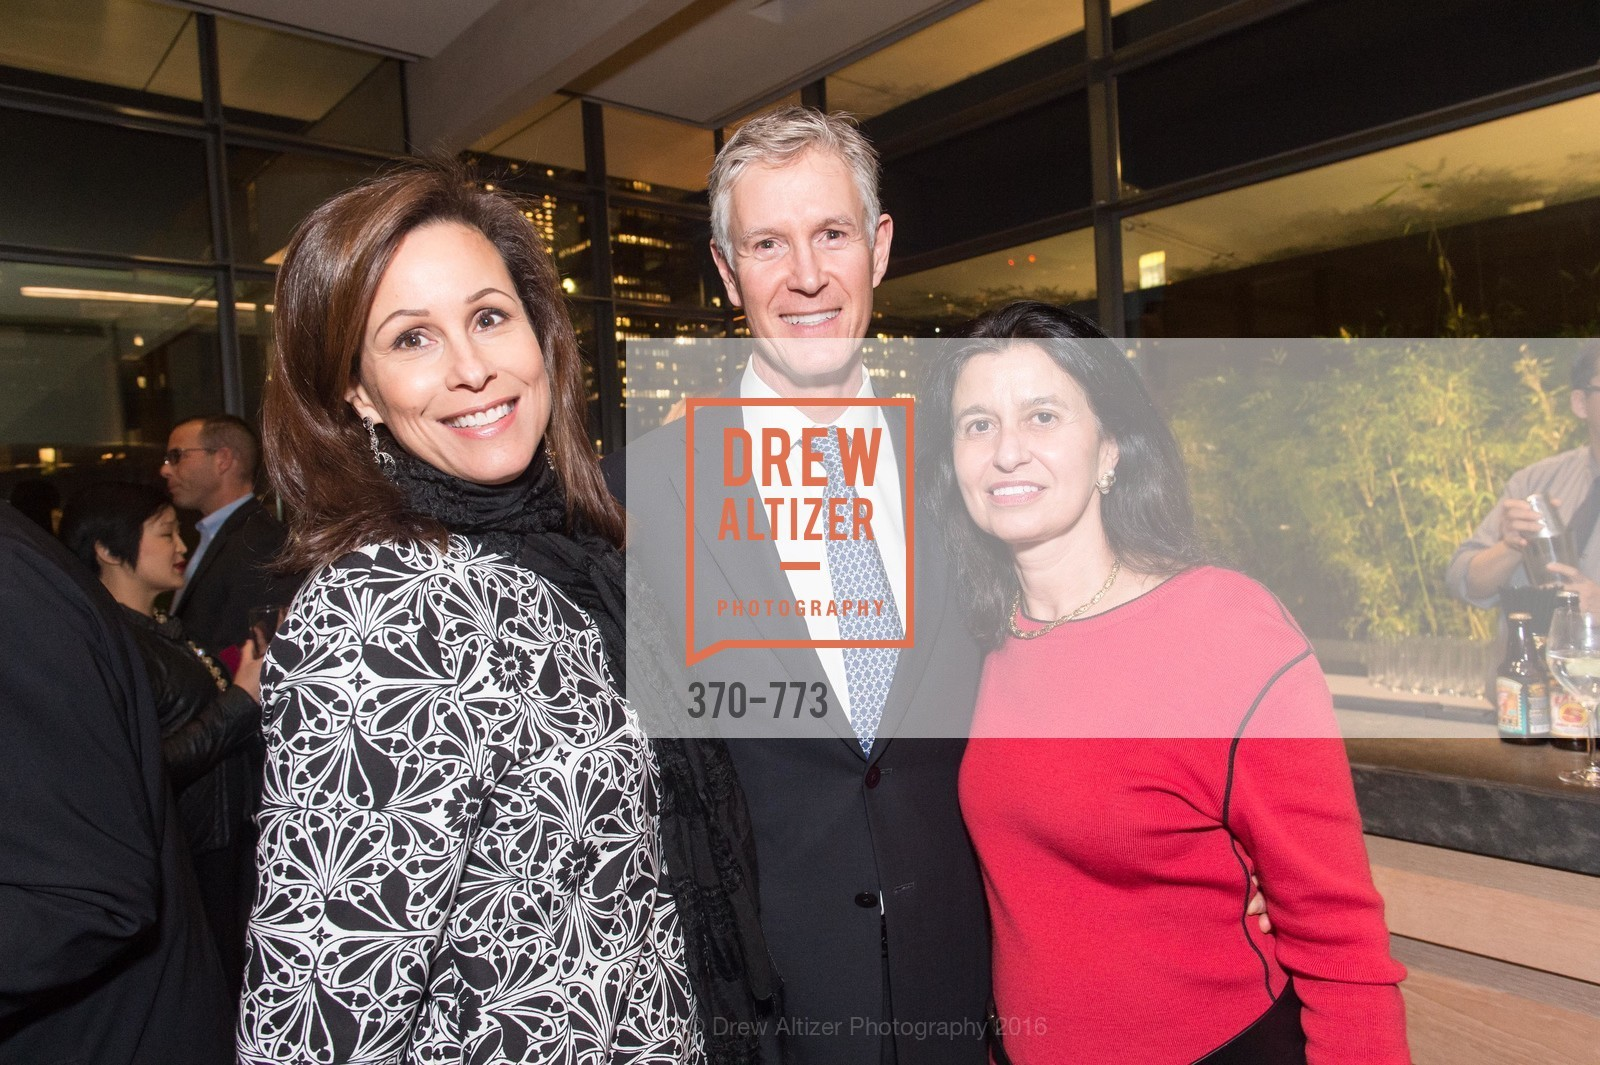 Linda Bettencourt, Callum Hutchins, Sotheby's International Realty's Celebrates the New Year, The Battery, Penthouse. 717 Battery St, January 27th, 2016,Drew Altizer, Drew Altizer Photography, full-service agency, private events, San Francisco photographer, photographer california